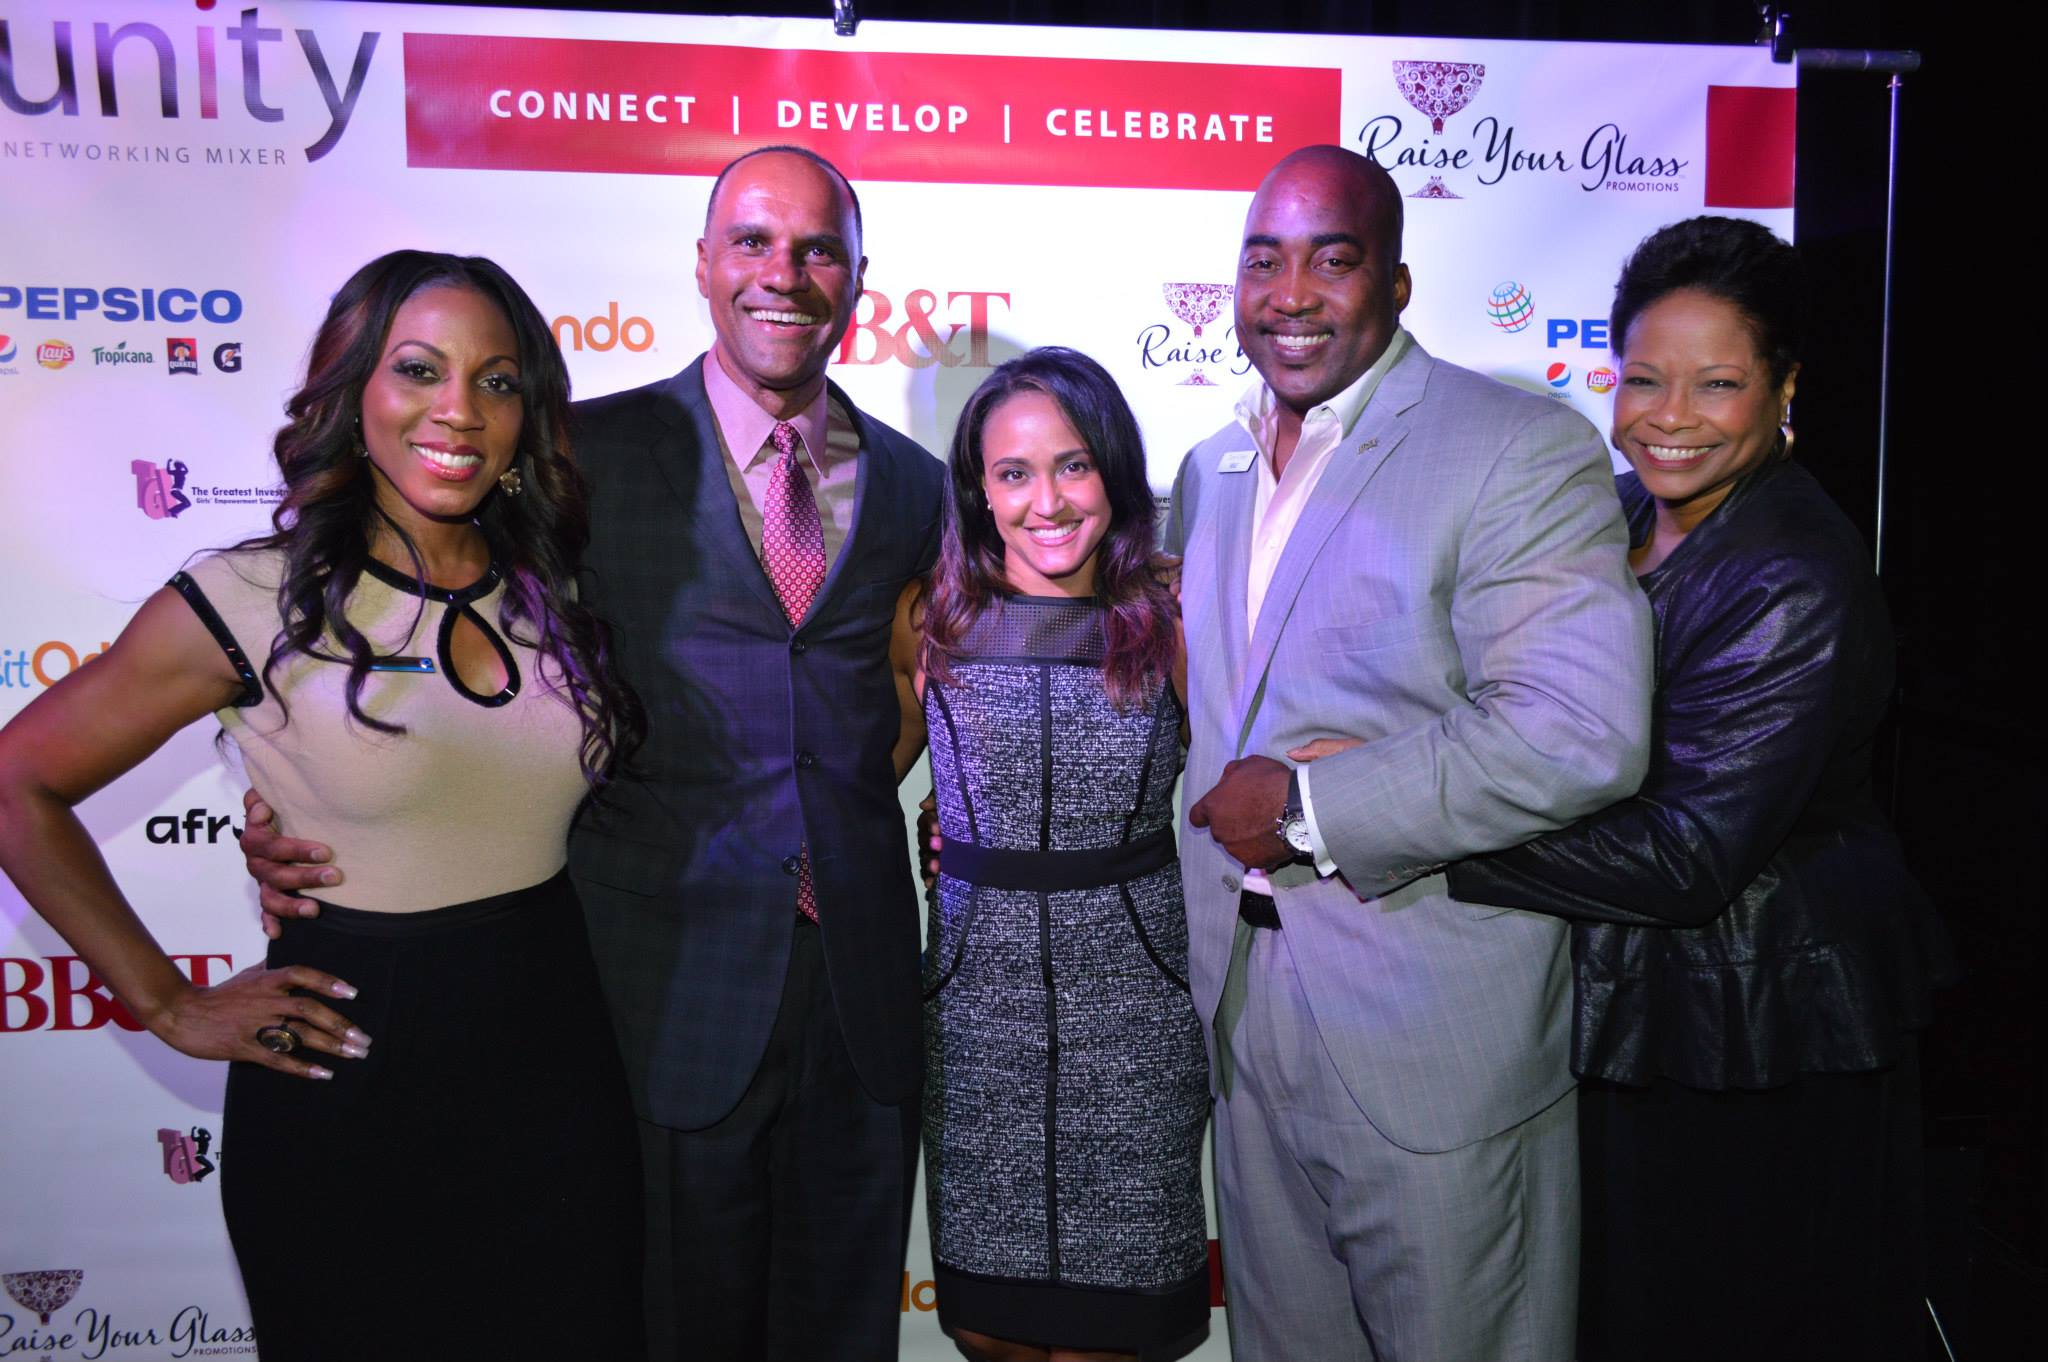 Raise Your Glass Promotions CEO Gigi Moorman (center) at a recent UNITY Executive Suite panel discussion event with (l-r) Lynette Jackson-Lott, Pepsi North America SVP/General Manager Derek Lewis, BB&T's Tony Coley, and Annette Wilson. Photo courtesy of Raise Your Glass Promotions.